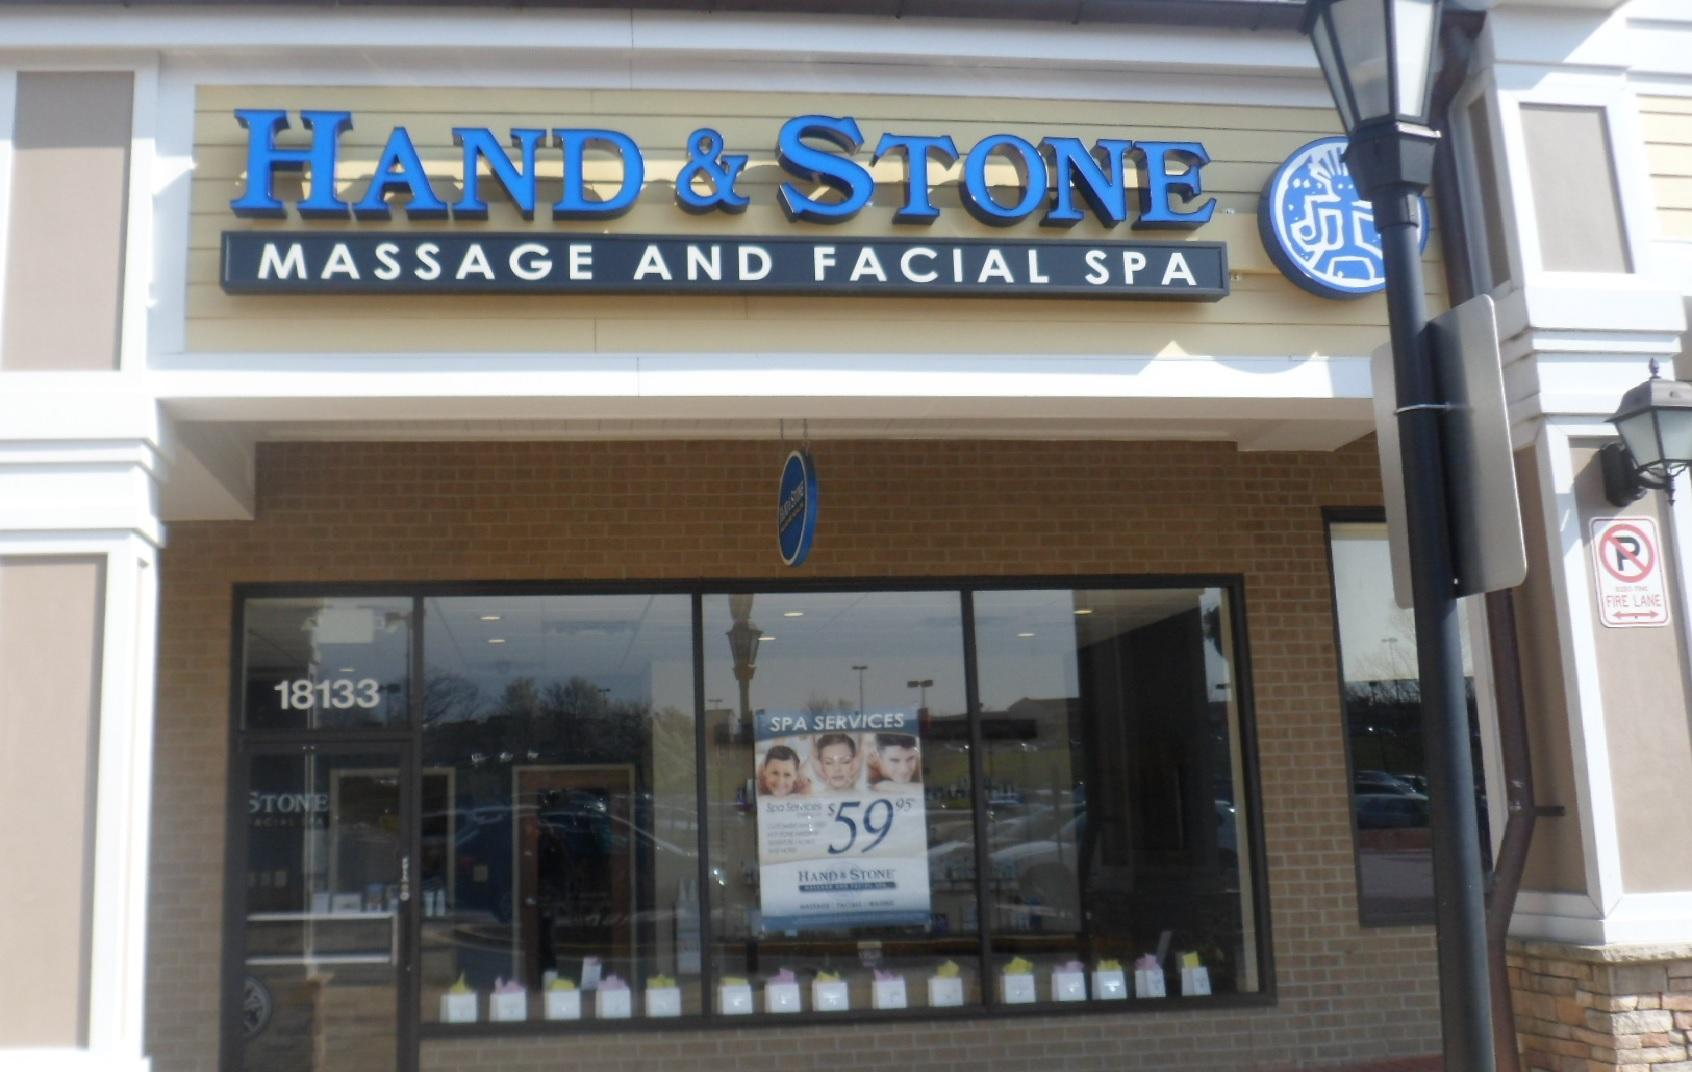 Hand and Stone Massage and Facial Spa, Olney MD